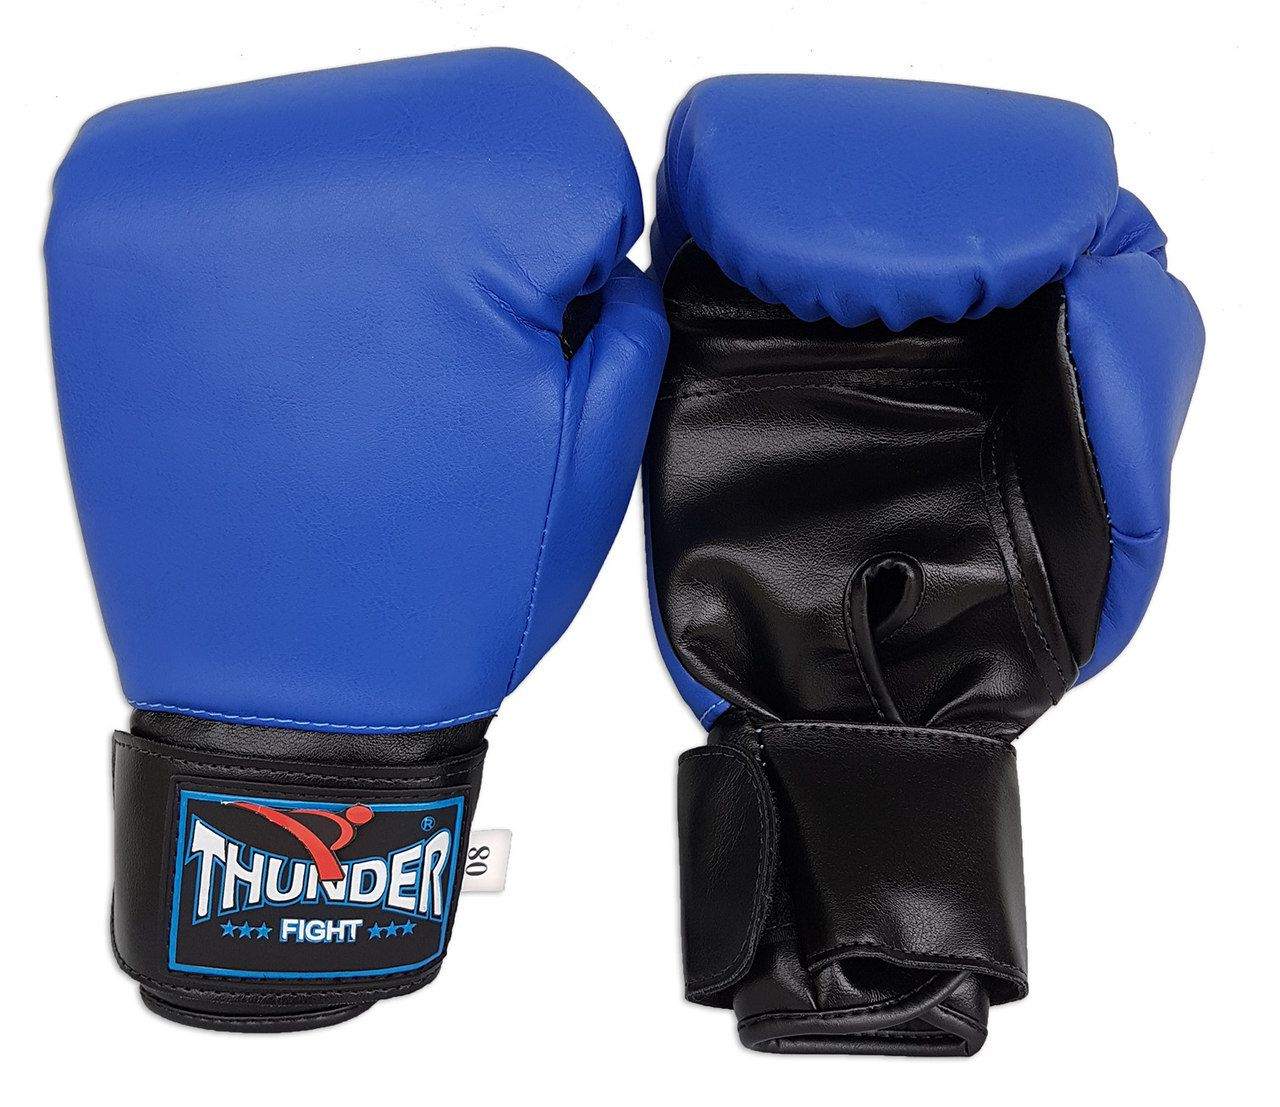 Luva de Boxe / Muay Thai 8oz - Azul - Thunder Fight  - PRALUTA SHOP